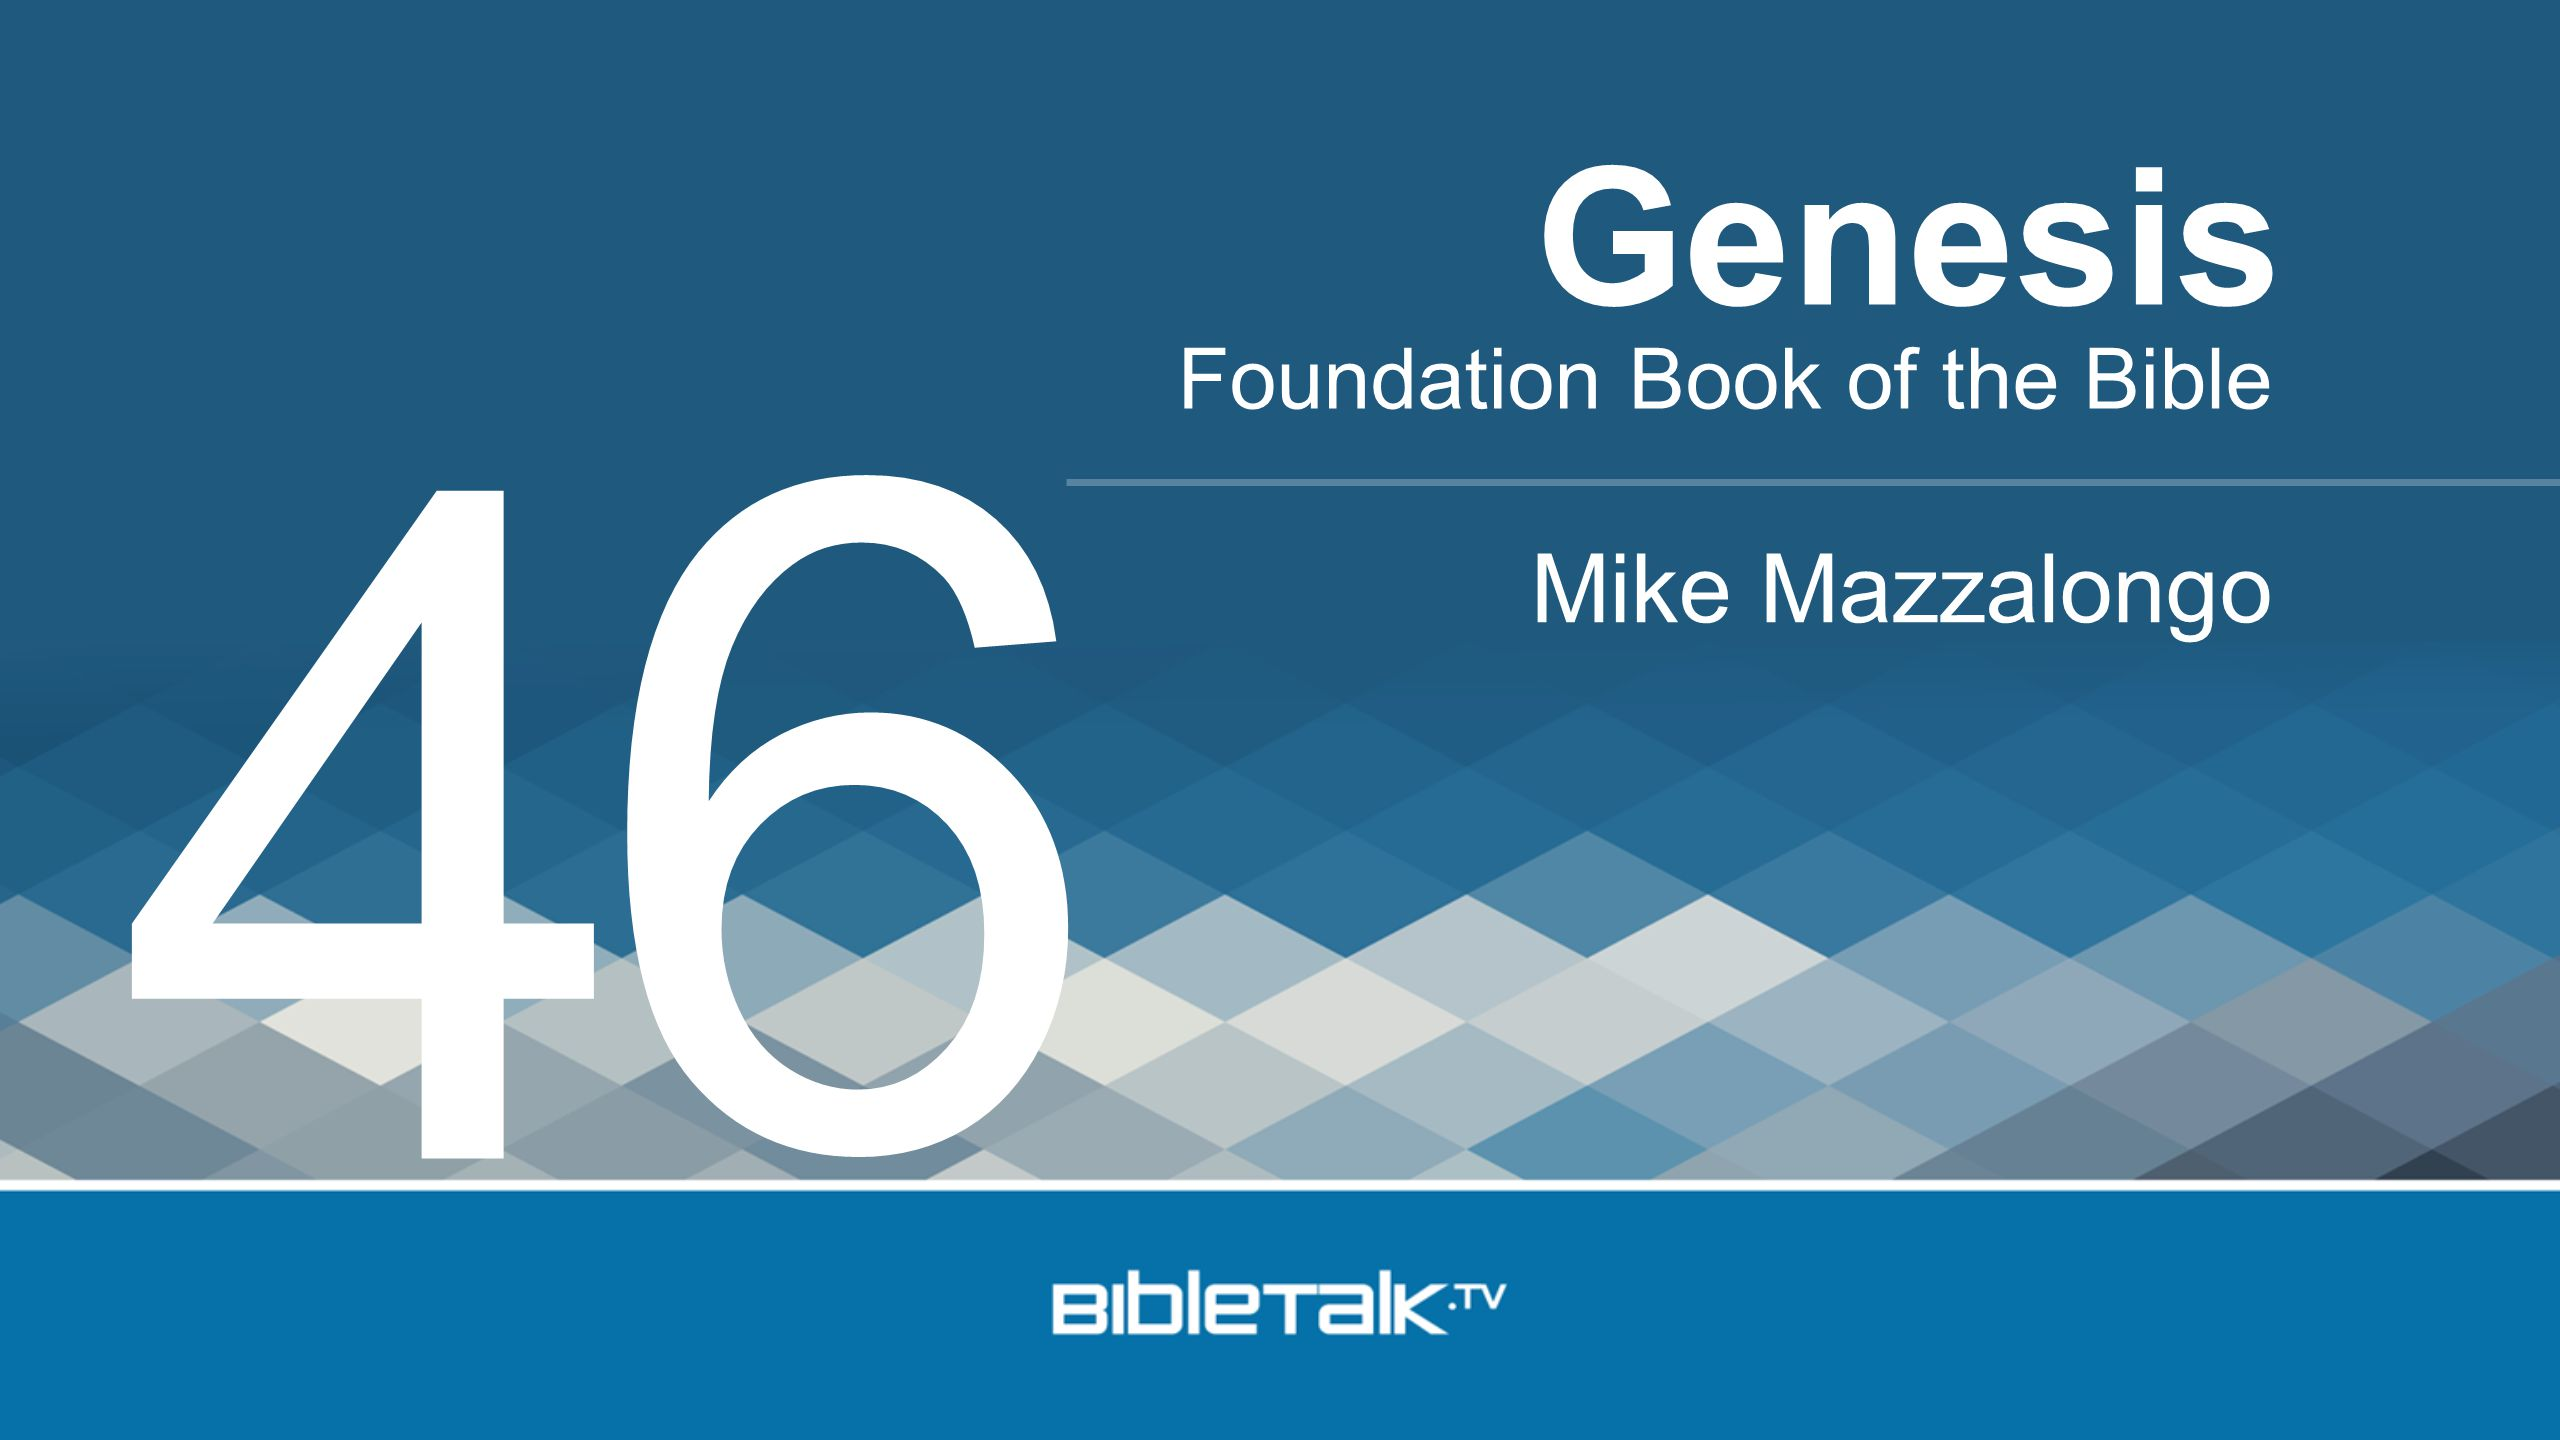 Genesis 6 4 Foundation Book of the Bible Mike Mazzalongo